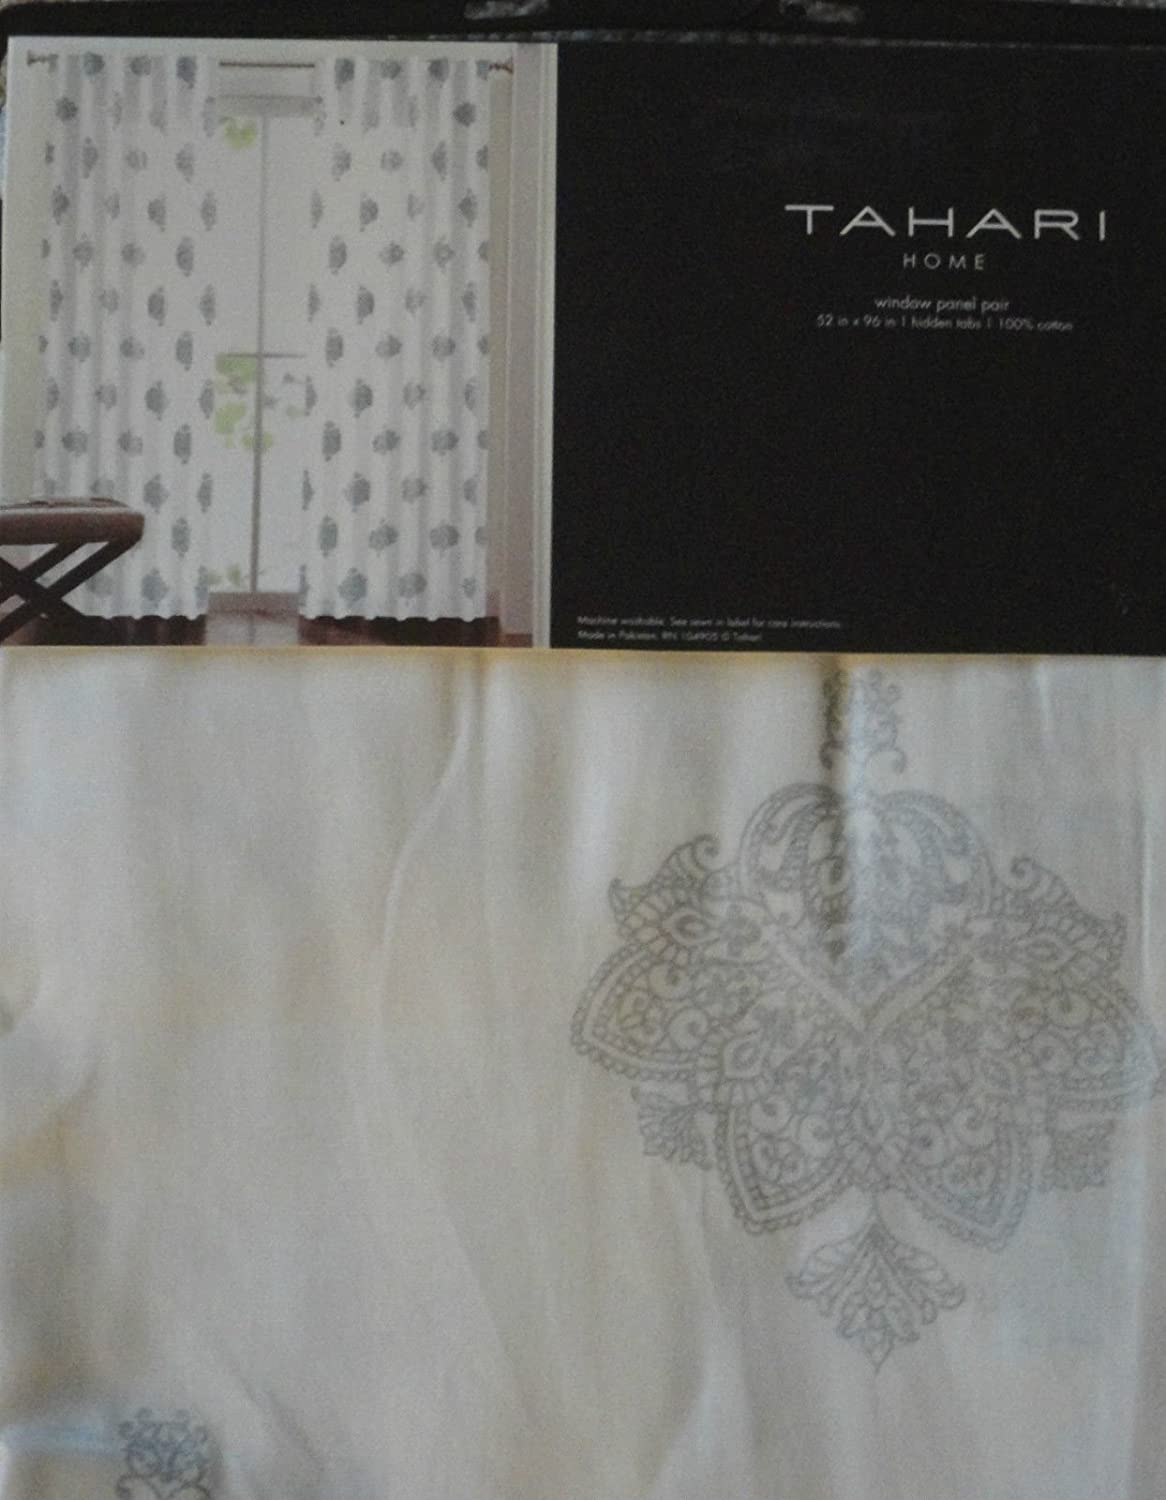 Amazon.com: Tahari White SILVER Istanbul DAMASK Window Panels ...